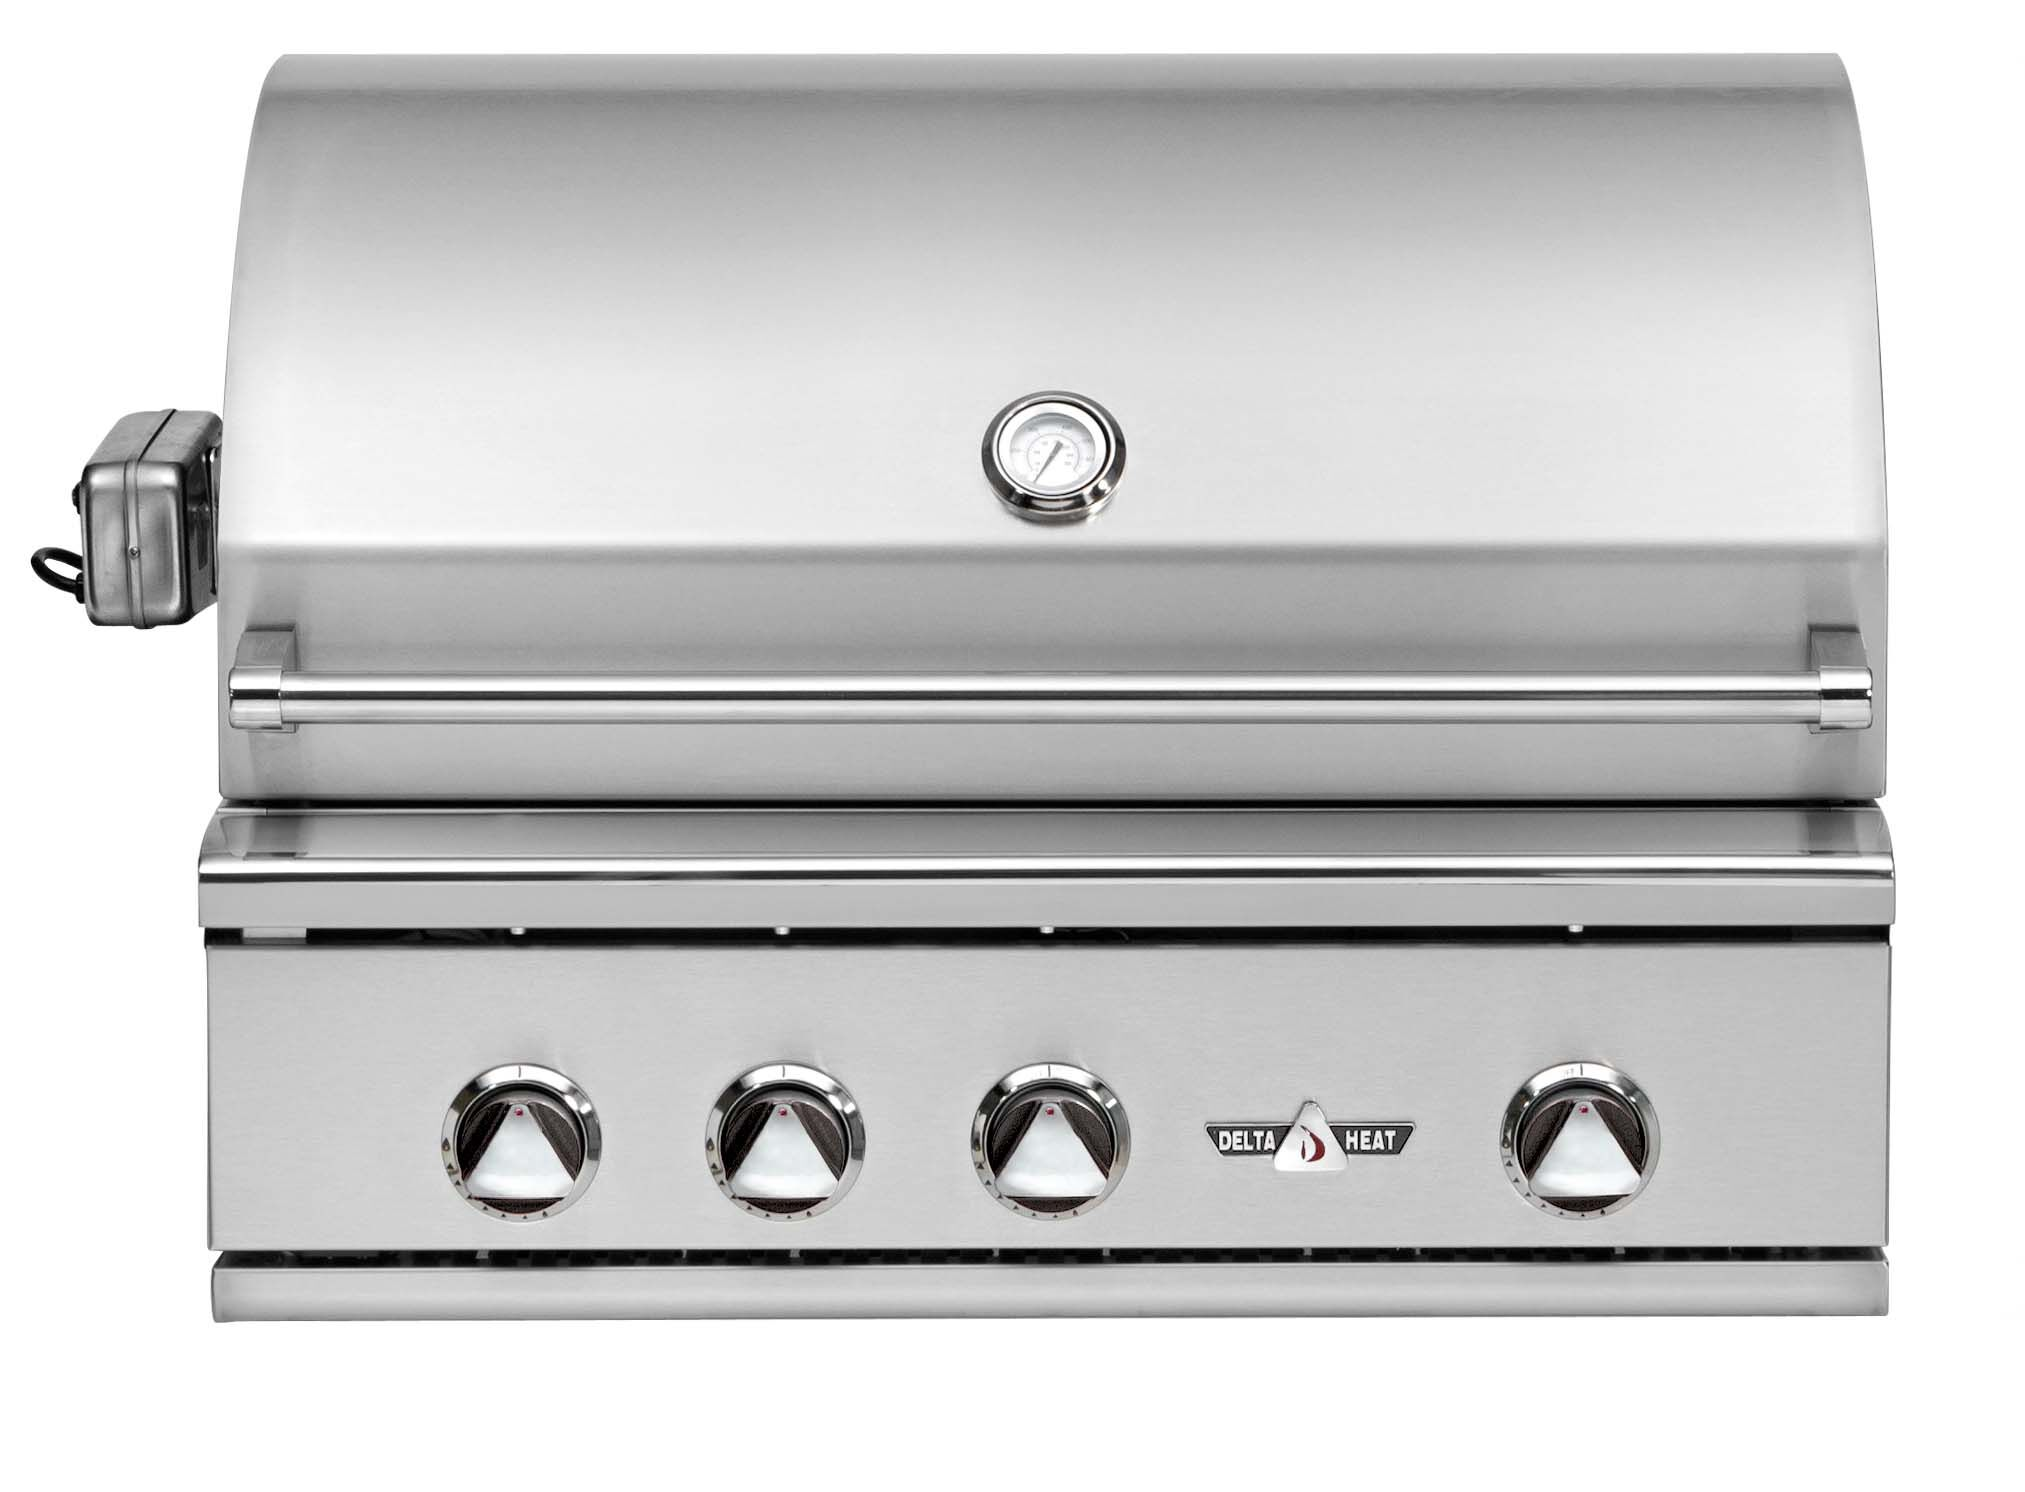 Delta Heat DHBQ32R Built-in Grill